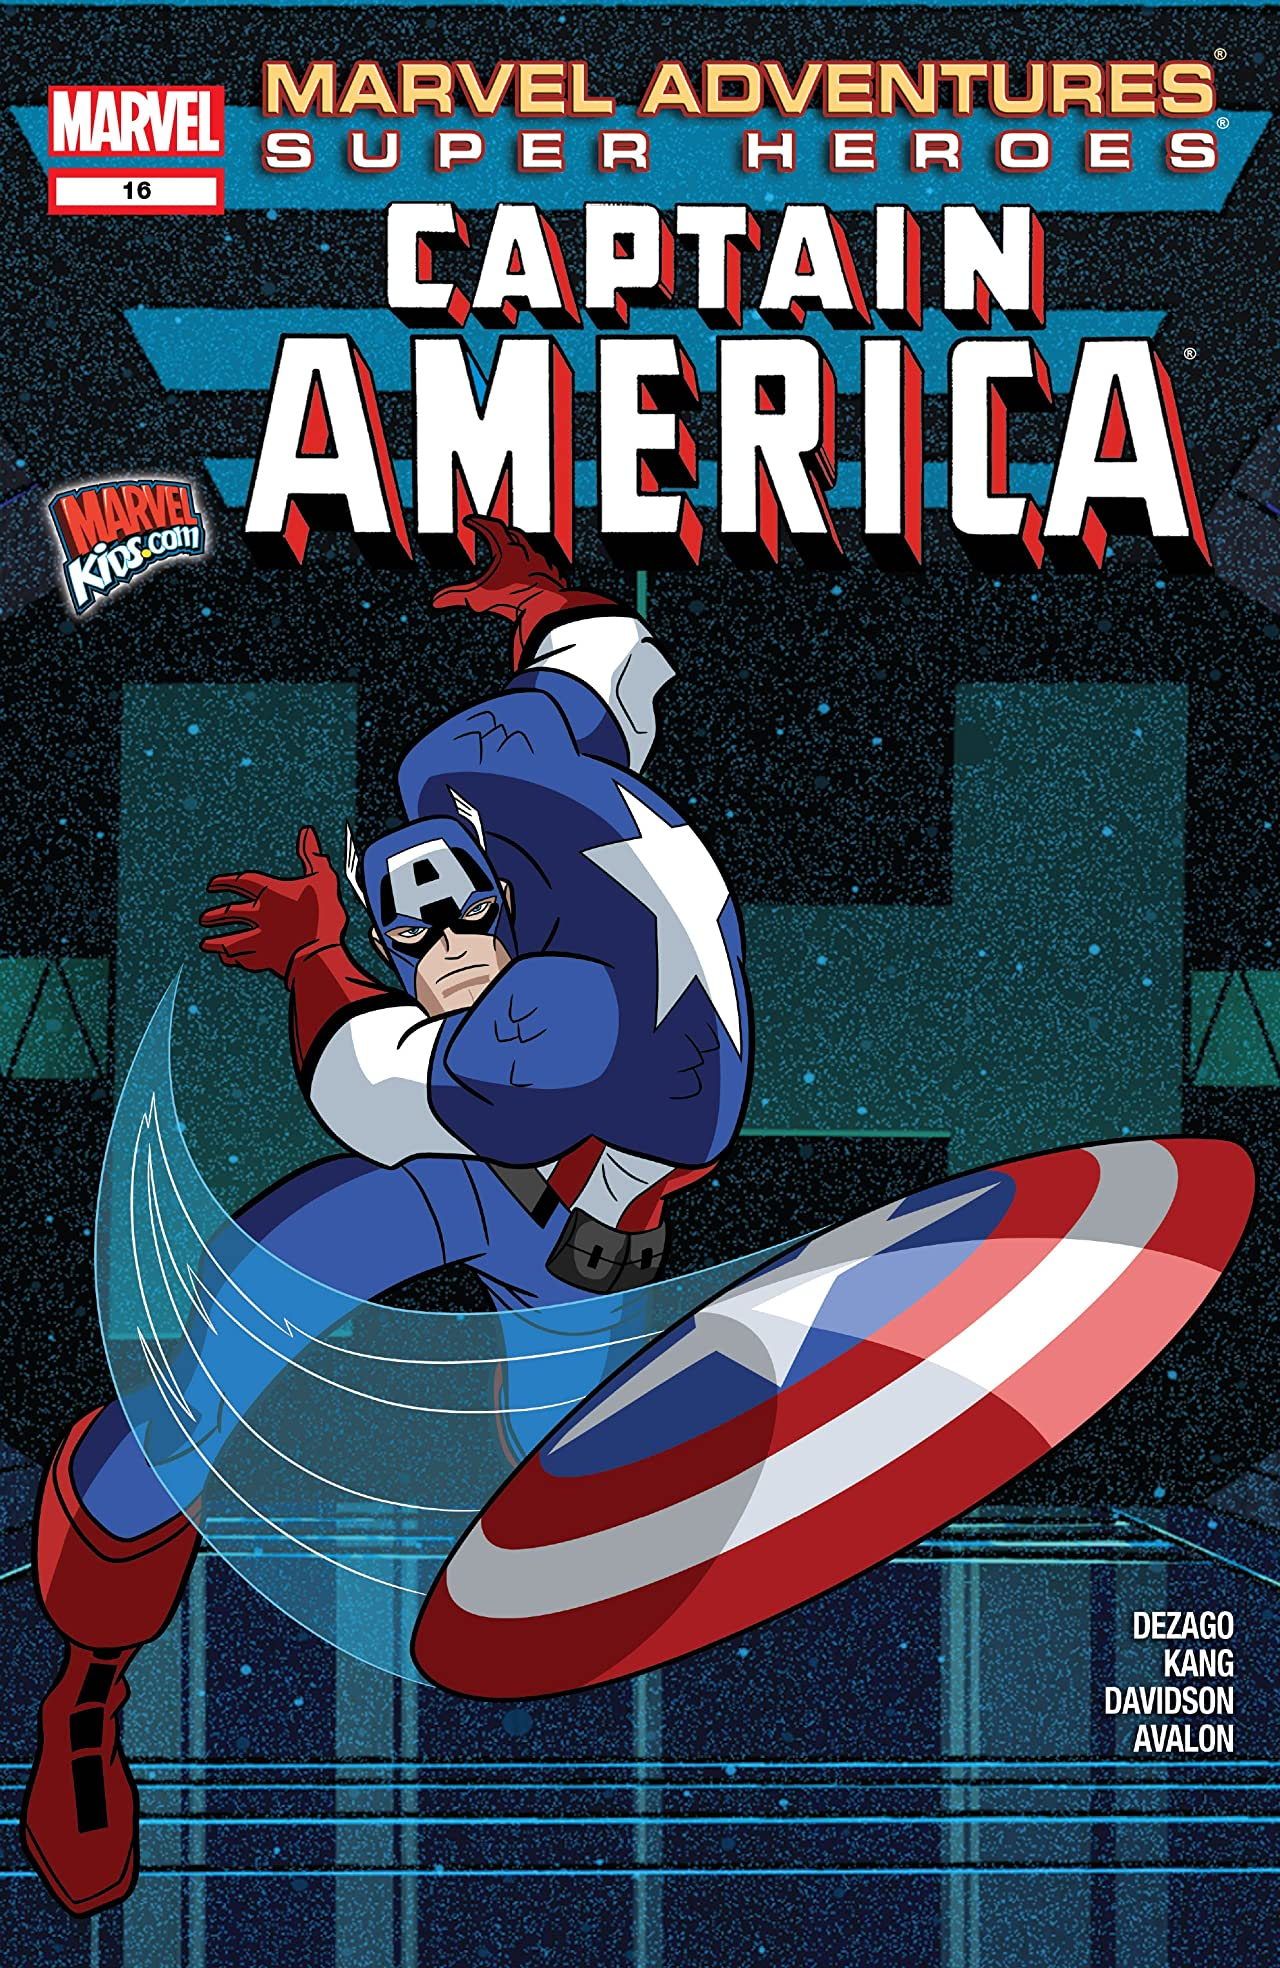 Marvel Adventures Super Heroes (2010-2012) #16